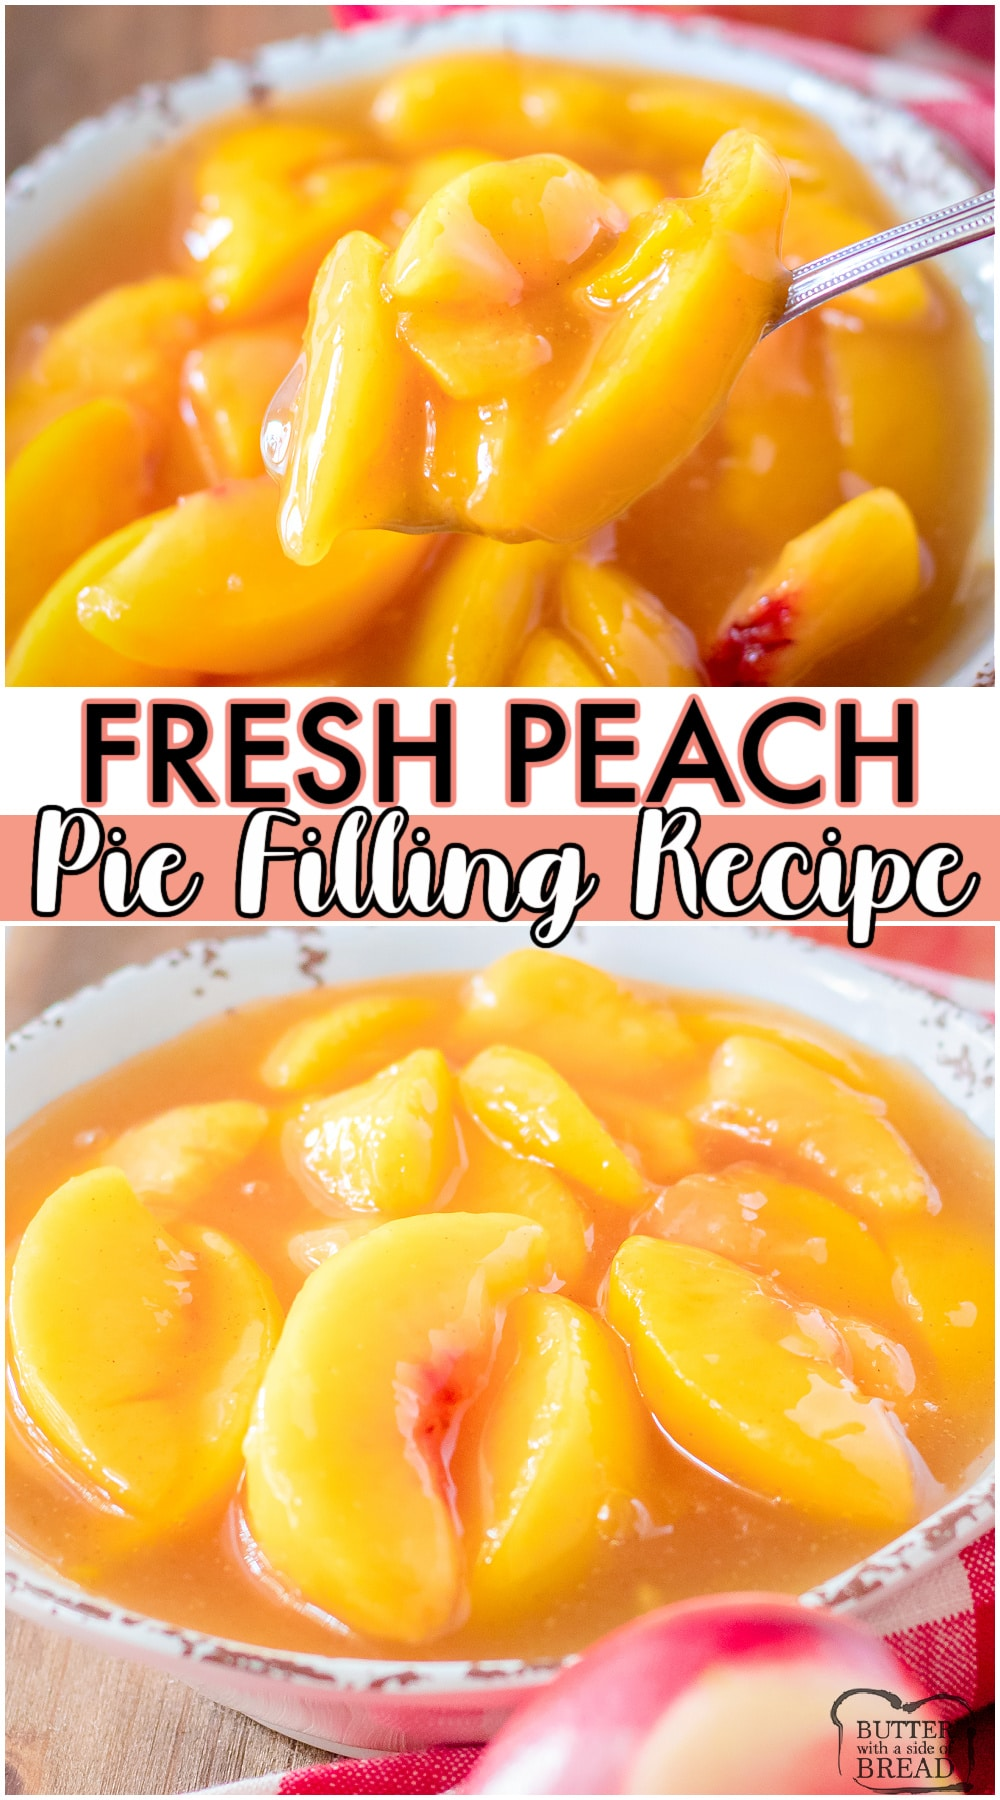 Peach pie filling recipe made with your favorite ripe peaches & simple pantry ingredients! Easy recipe for peach filling to use in pies, cobblers, tarts, or on ice cream! #peach #piefilling #peaches #easyrecipe from BUTTER WITH A SIDE OF BREAD